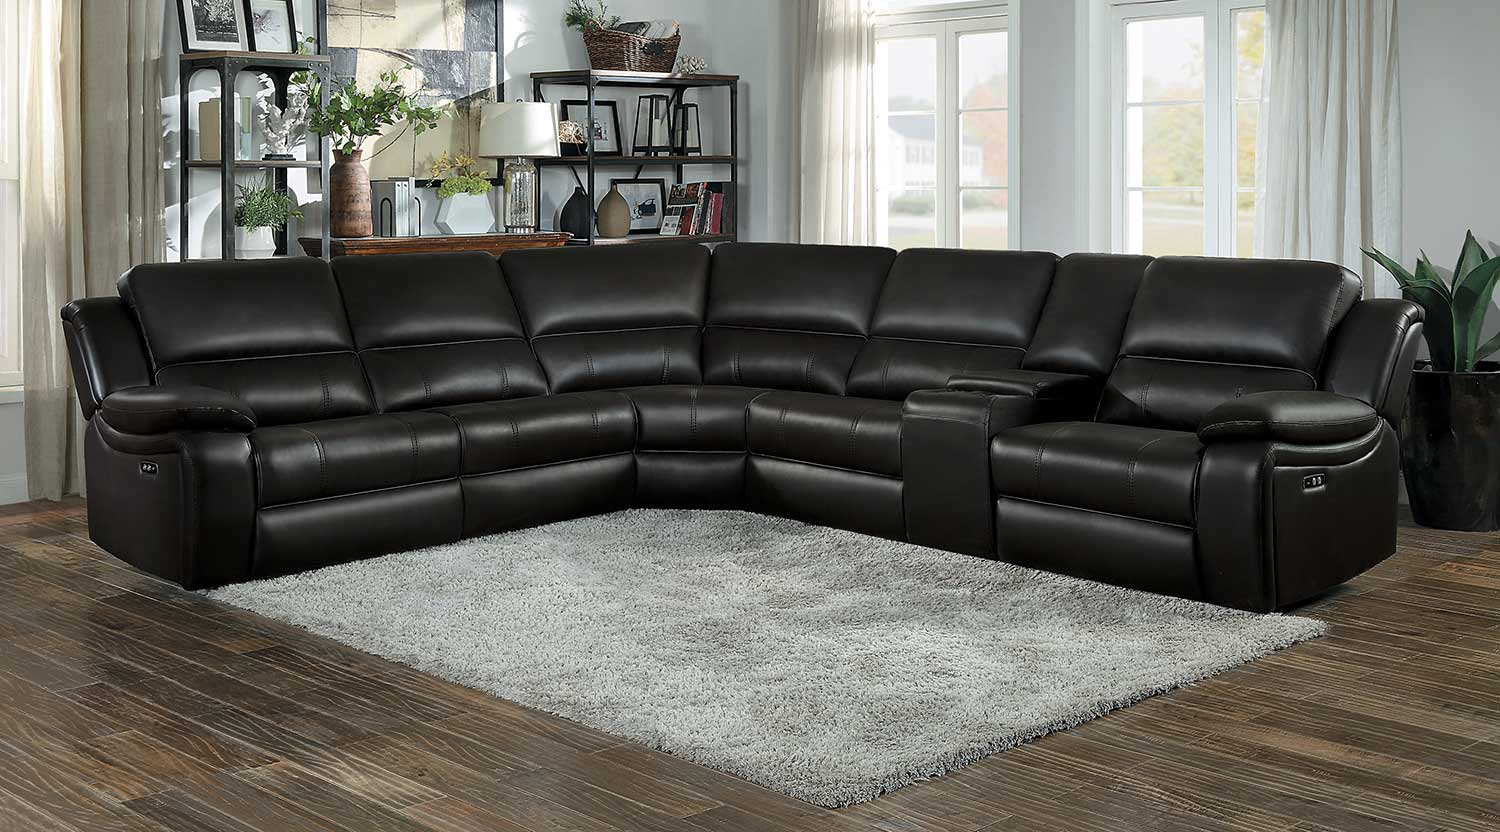 Homelegance Falun Power Reclining Sectional Sofa Set - Dark Brown